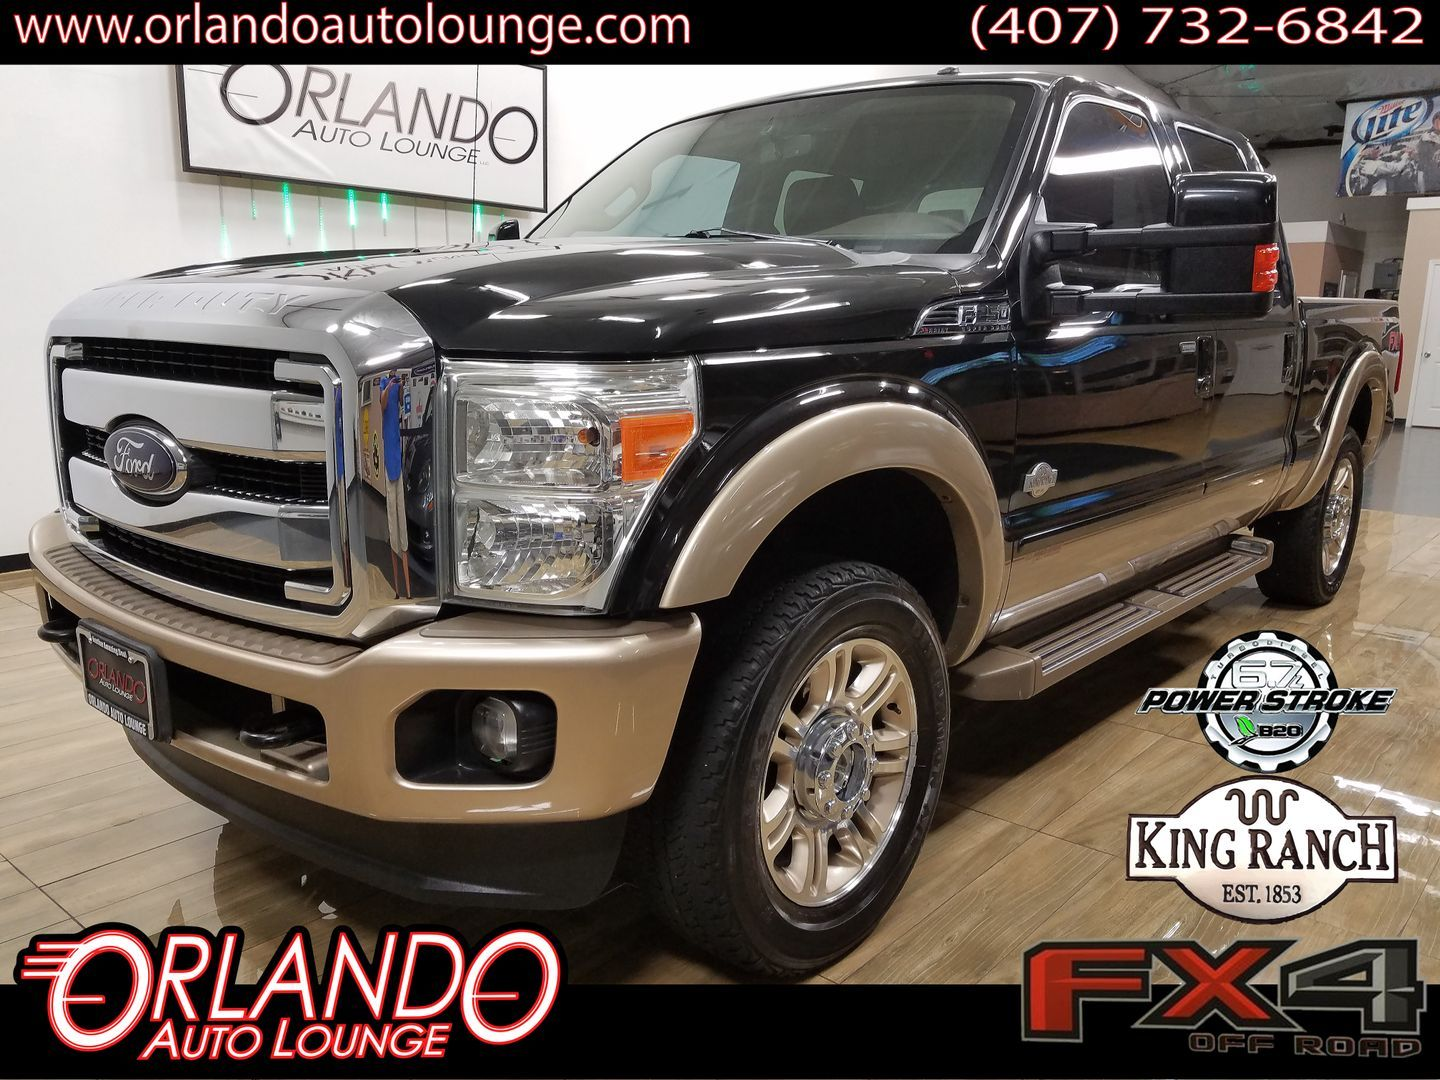 2012 Ford F250 Super Duty Crew Cab King Ranch Pickup 4d 6 3 4 Ft